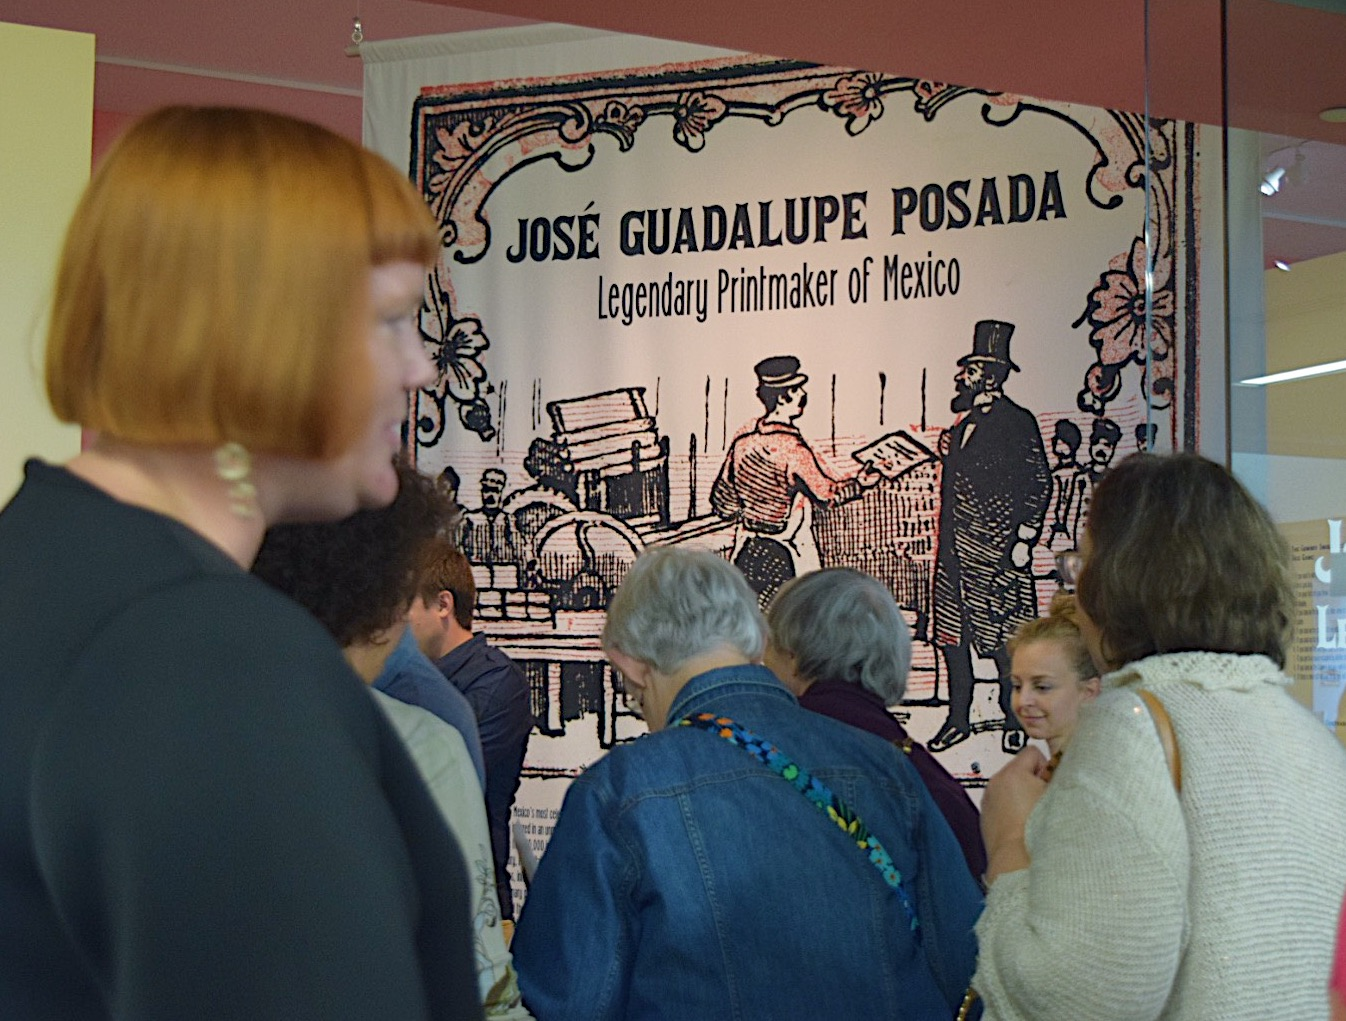 Attendees+piling+into+the+Jose+Guadalupe+gallery+for+an+hourly+tour.